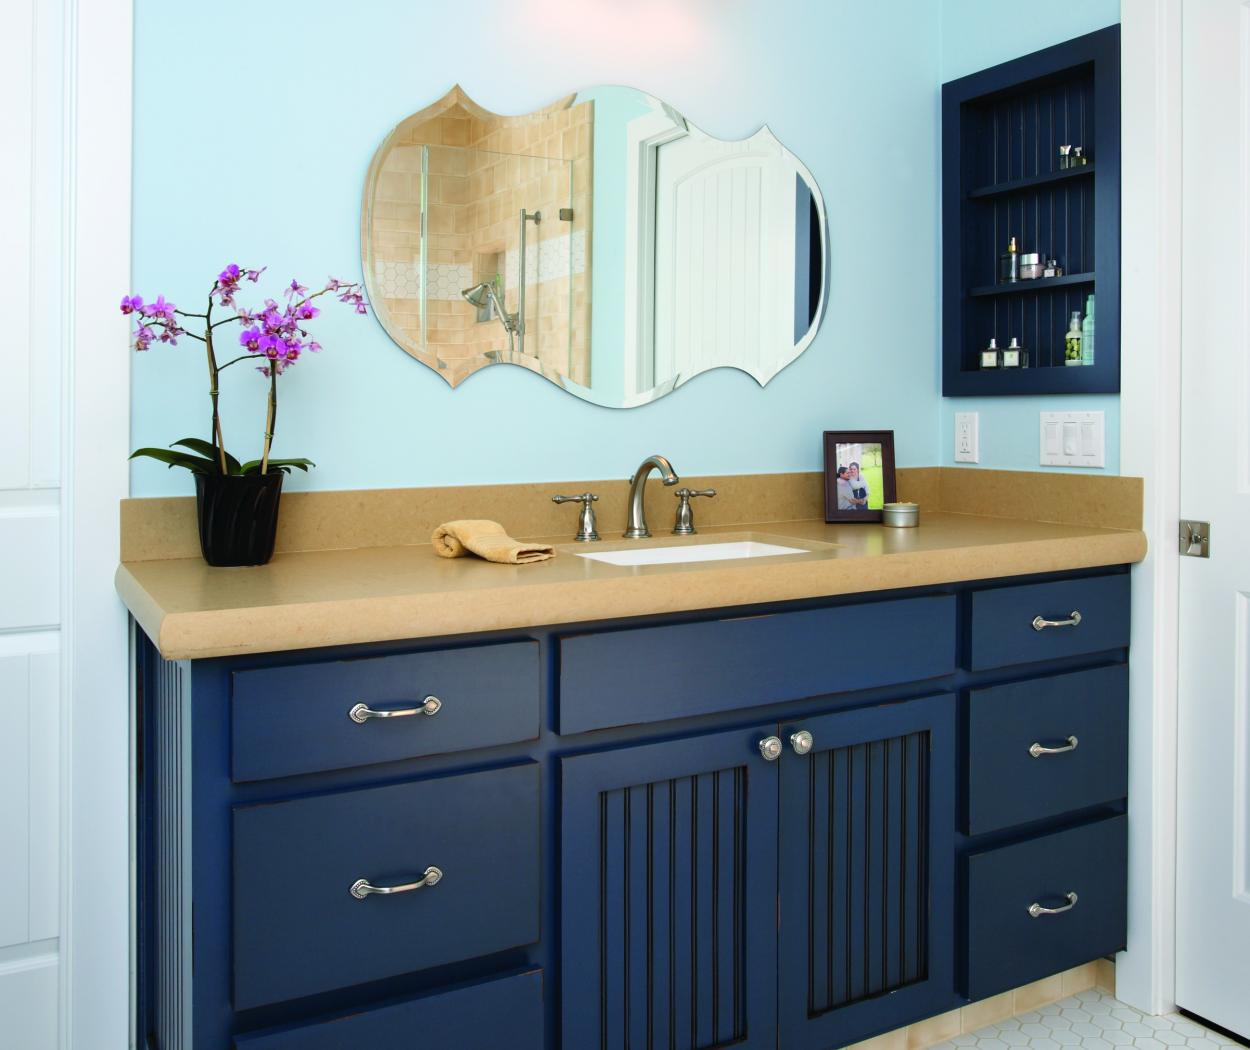 Beautiful Navy Bathroom Vanity with Beadboard Doors, Open Shelves and Decorative Hardware